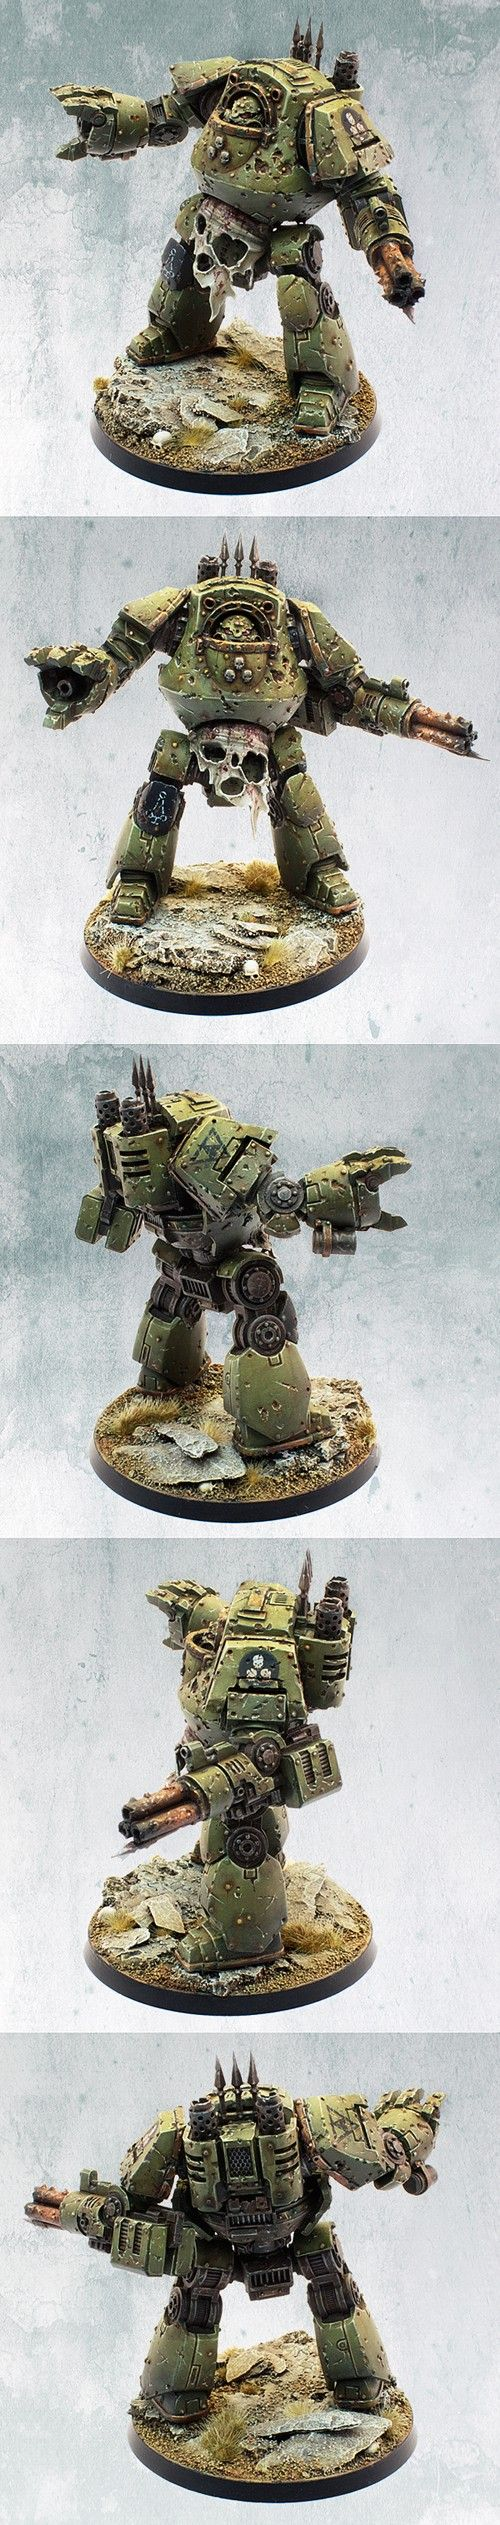 CoolMiniOrNot - Nurgle Death Guard Chaos Space Marine Contemptor Dreadnought by itshammertime!